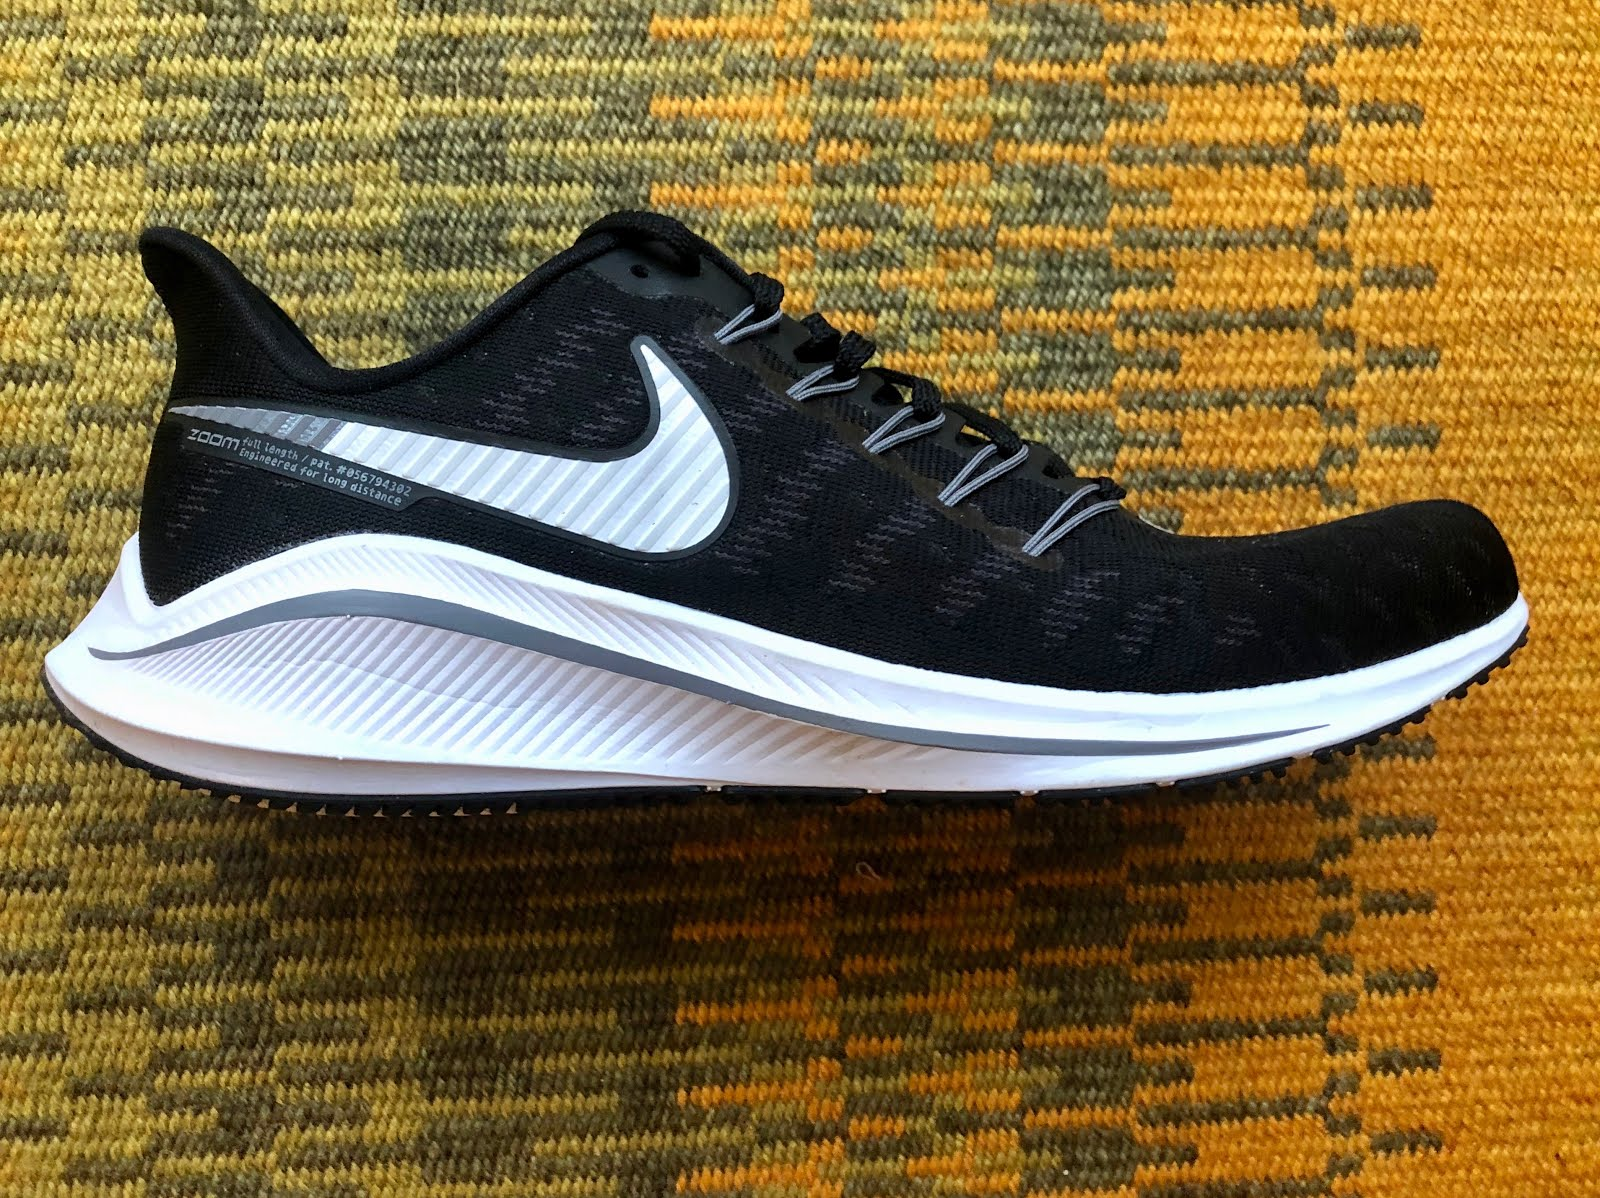 Nike Zoom Vomero 14 Review  Fast and Responsive Heavy Duty Run Trainer! 6608332da